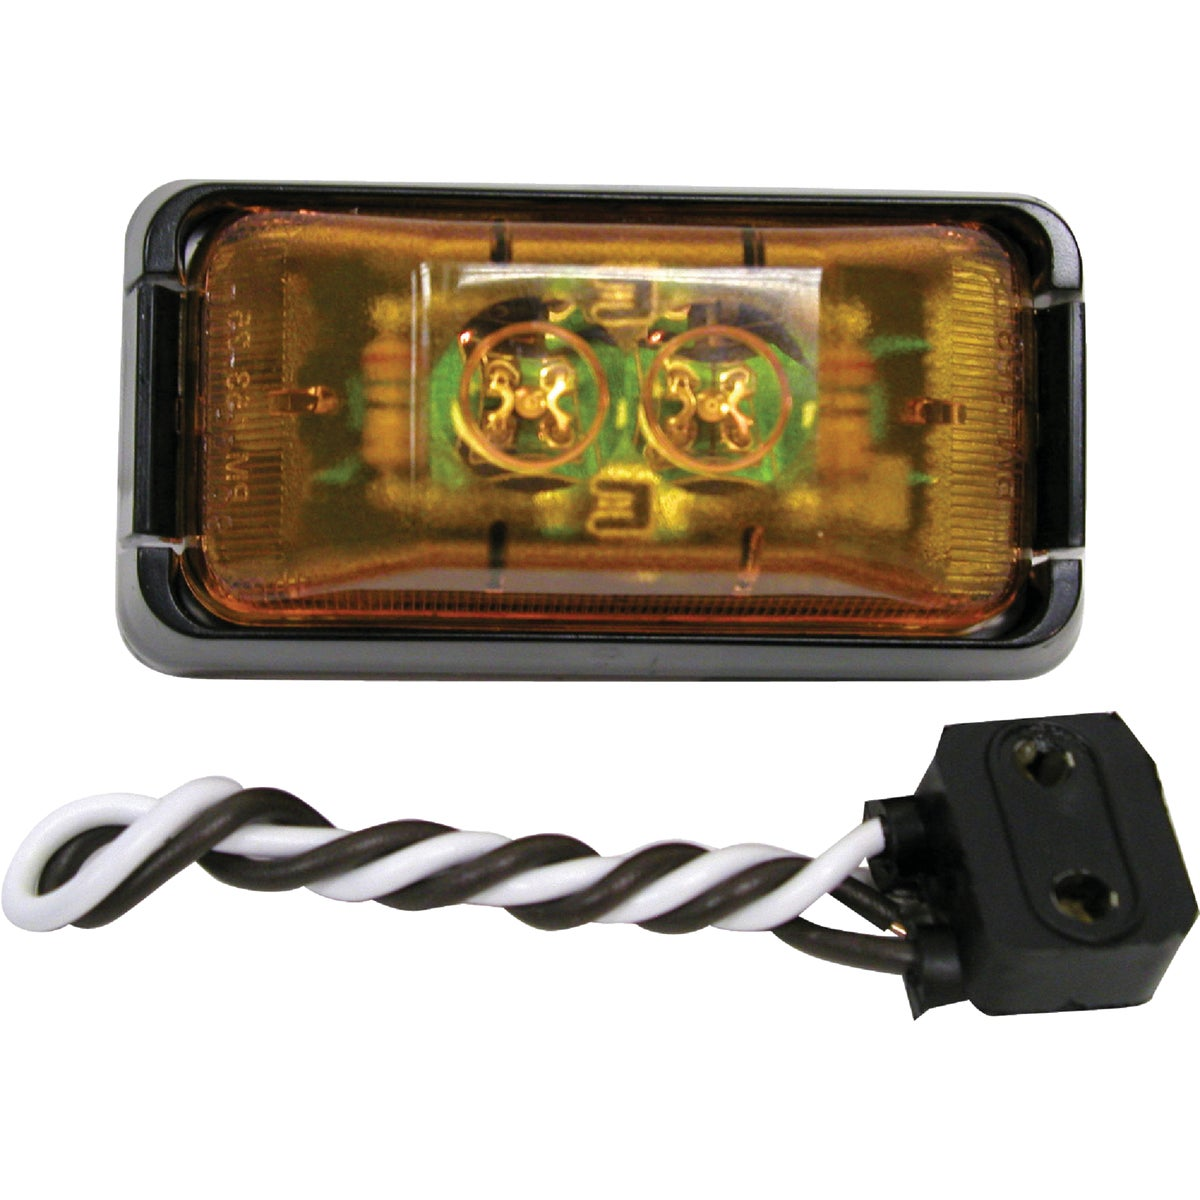 LED AMBER CLEARANCE KIT - V153KA by Peterson Mfg Co